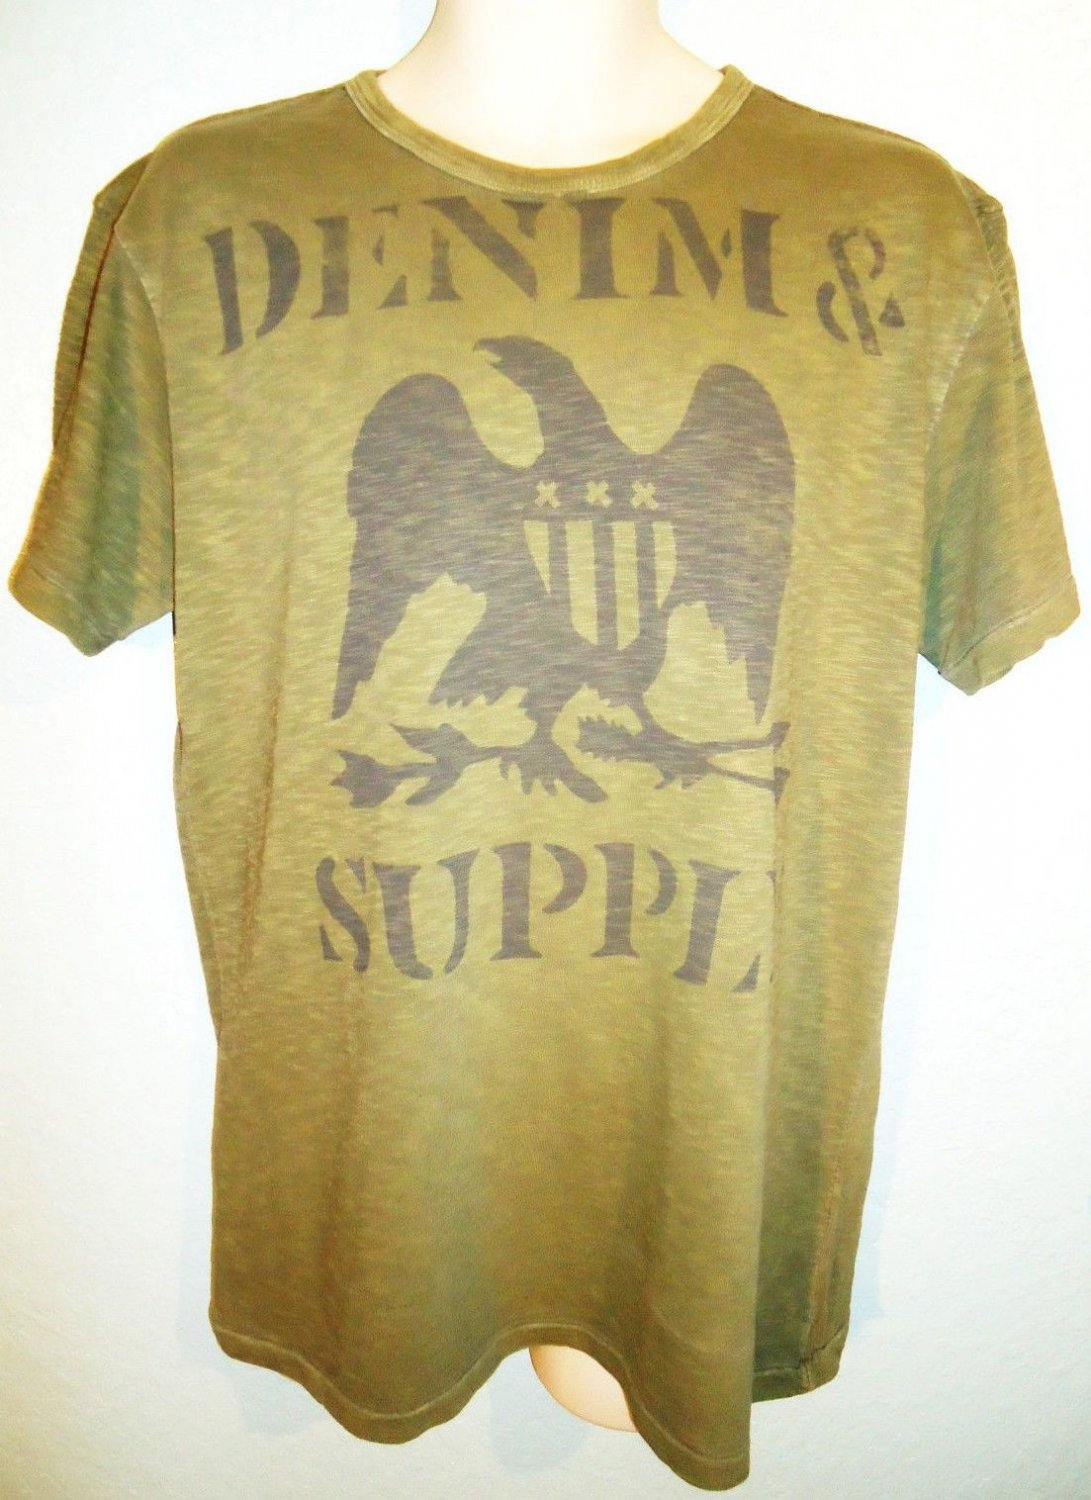 RALPH LAUREN - POLO - RL - LARGE - D&S - EAGLE - ARMY - GREEN - T-SHIRT - NEW